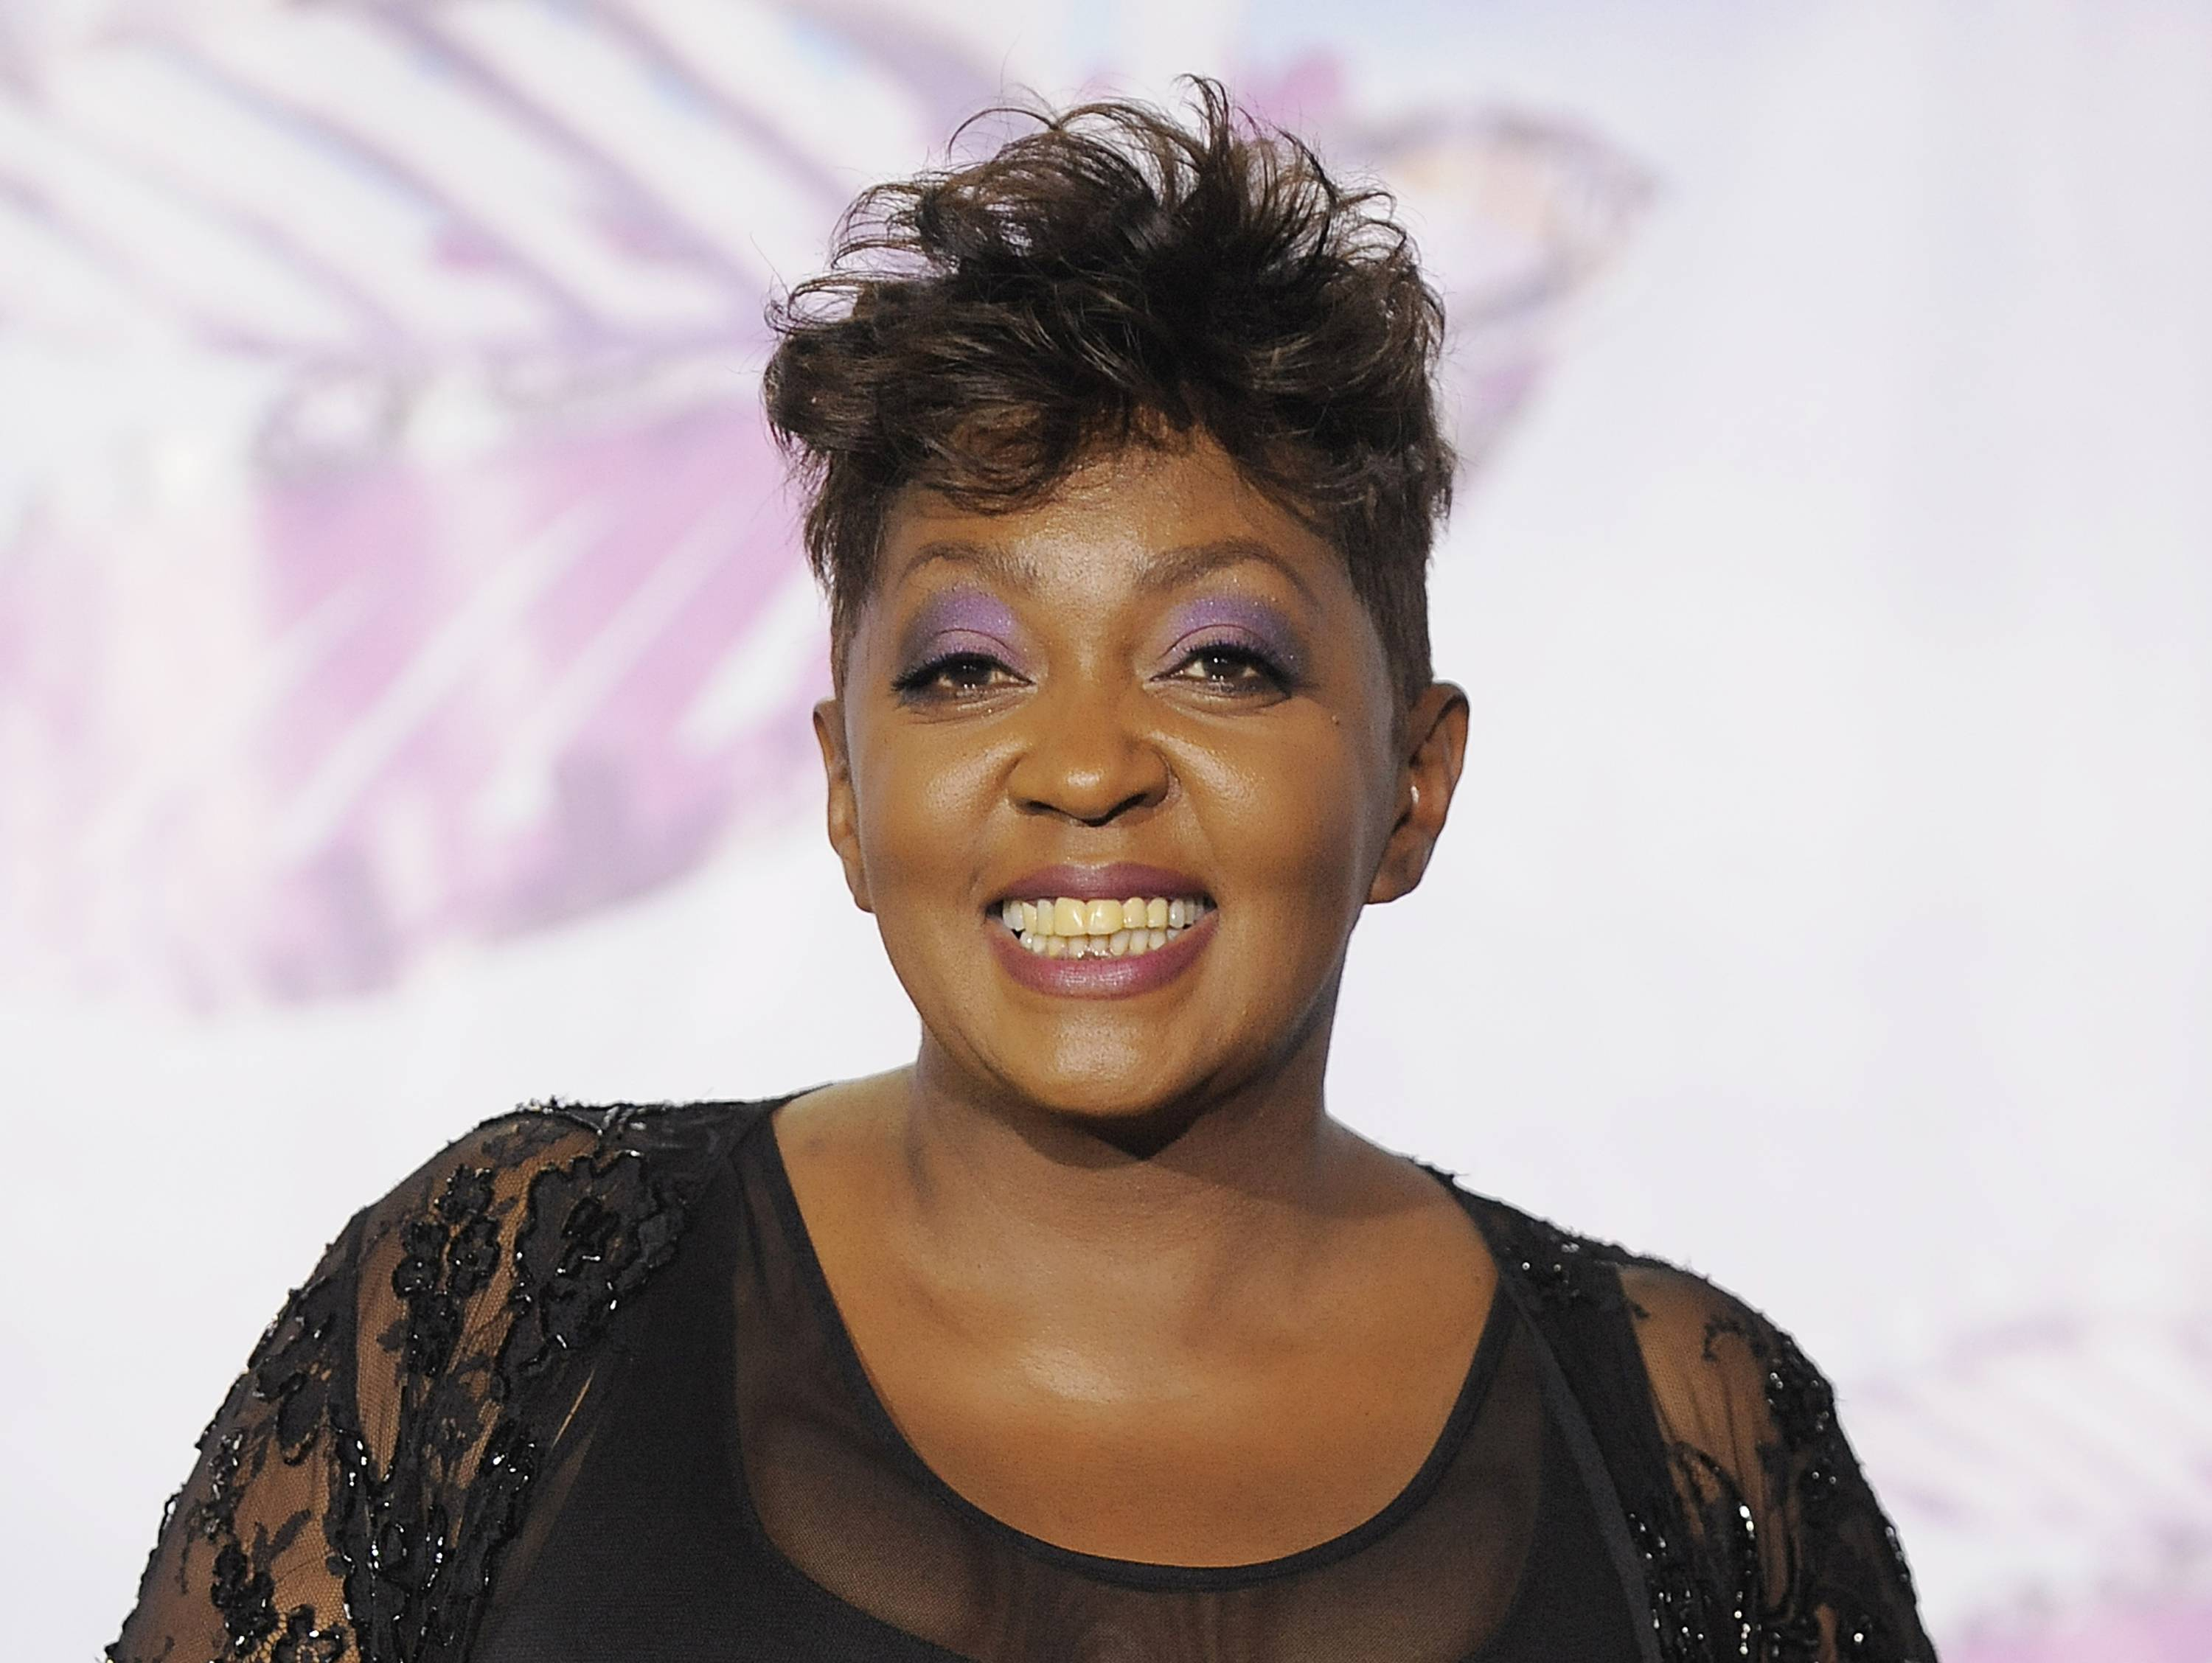 A judge signed off on the warrant this week for singer Anita Baker. It was sought by the lawyer for a company that says she owes it $15,000 for work done on her home.